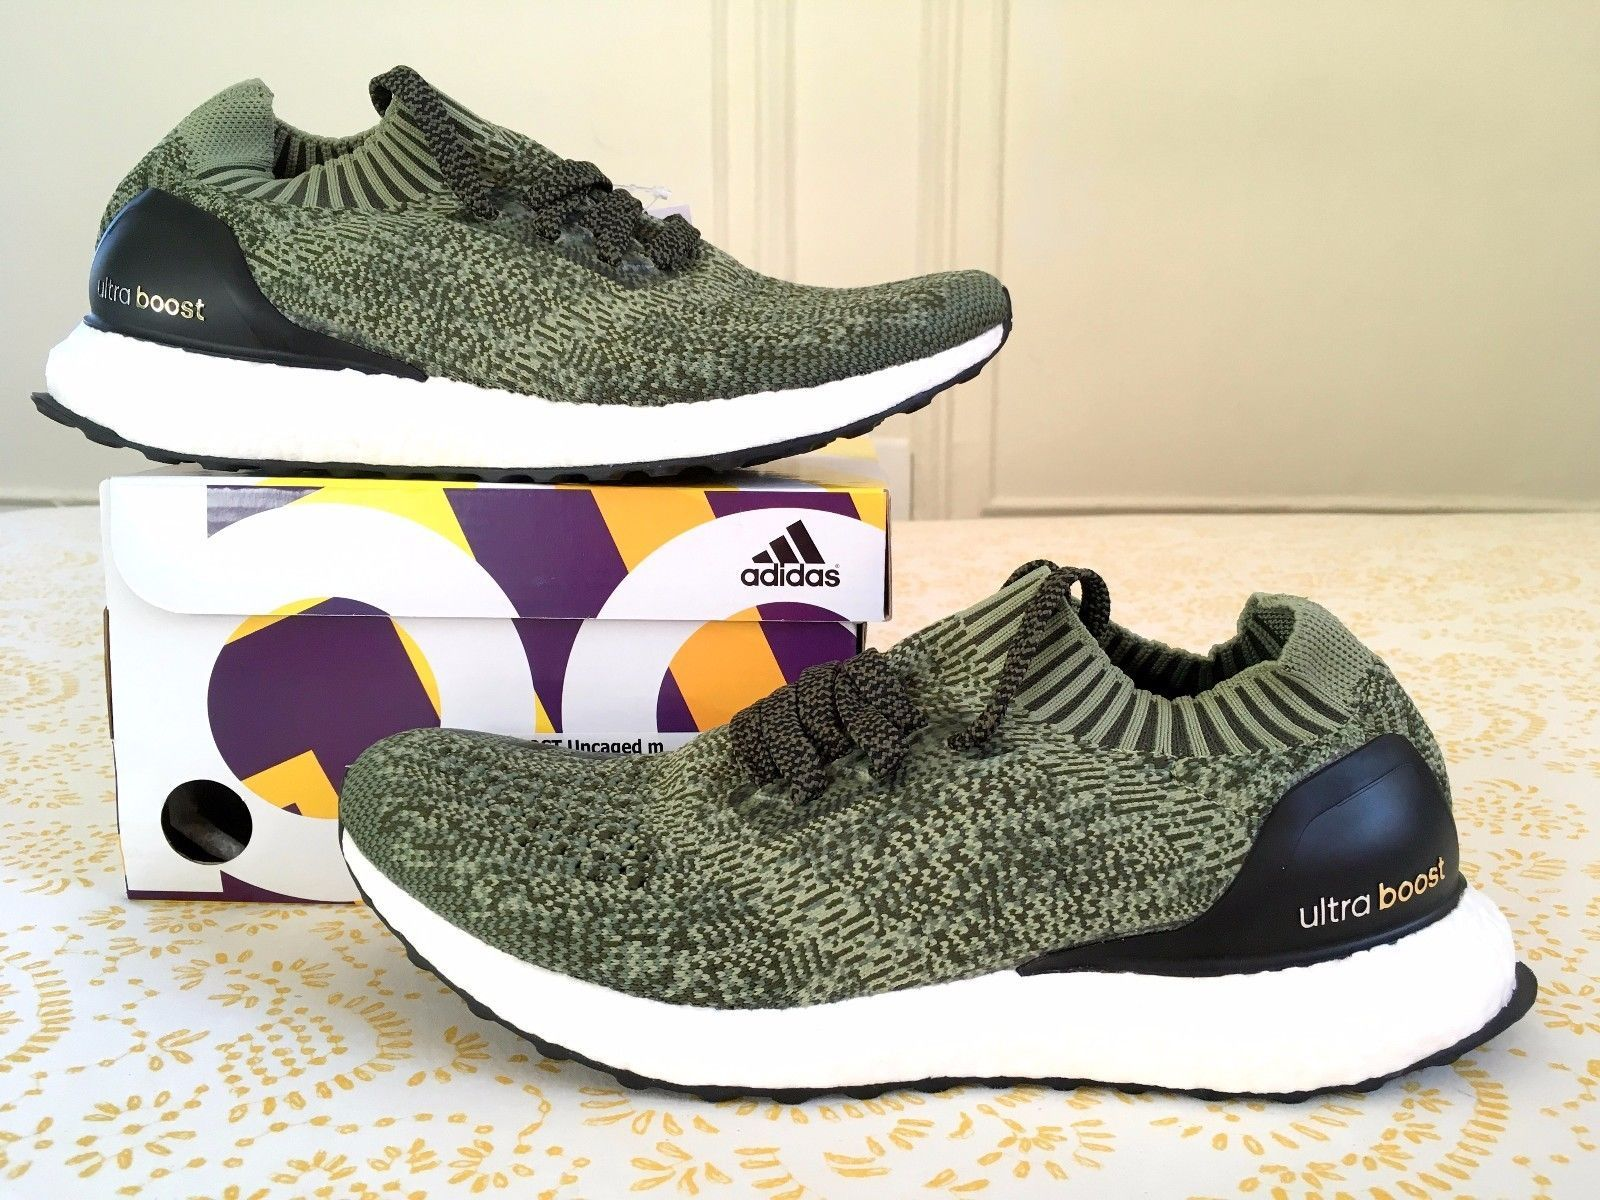 New Mens Adidas Ultra Boost Army Green Size 11 S80637 Running Shoes W/ Recieipt Green UK Online Ou